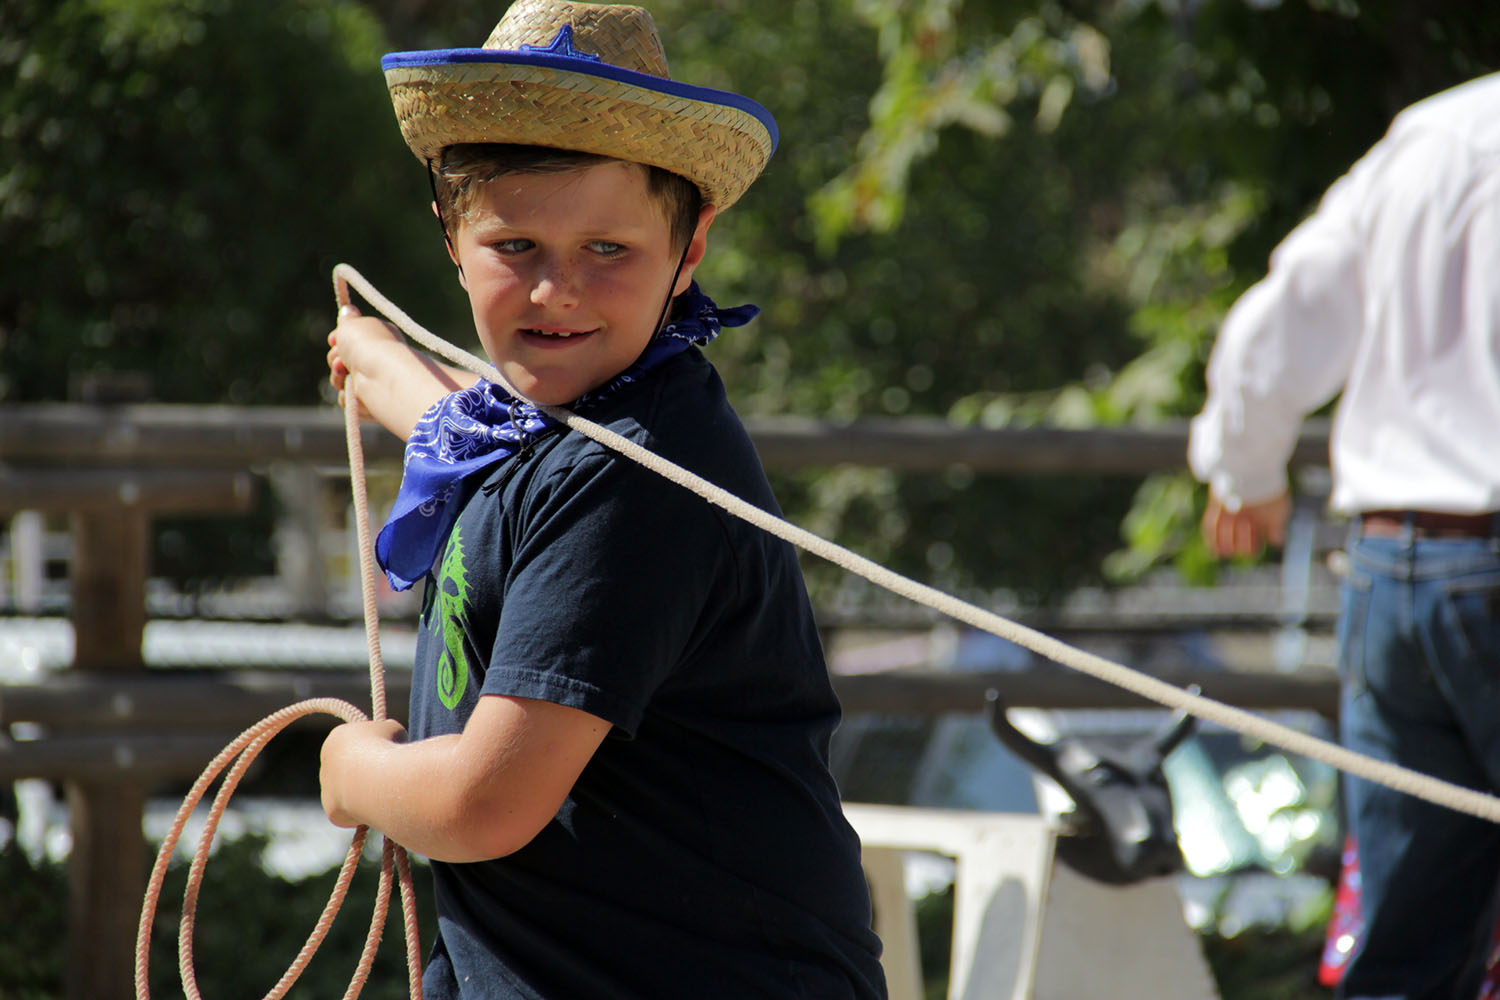 Johnny Coniglio pulls his rope tight after successfully getting the end of his lasso around a fake steer. Photo: Shawn Raymundo